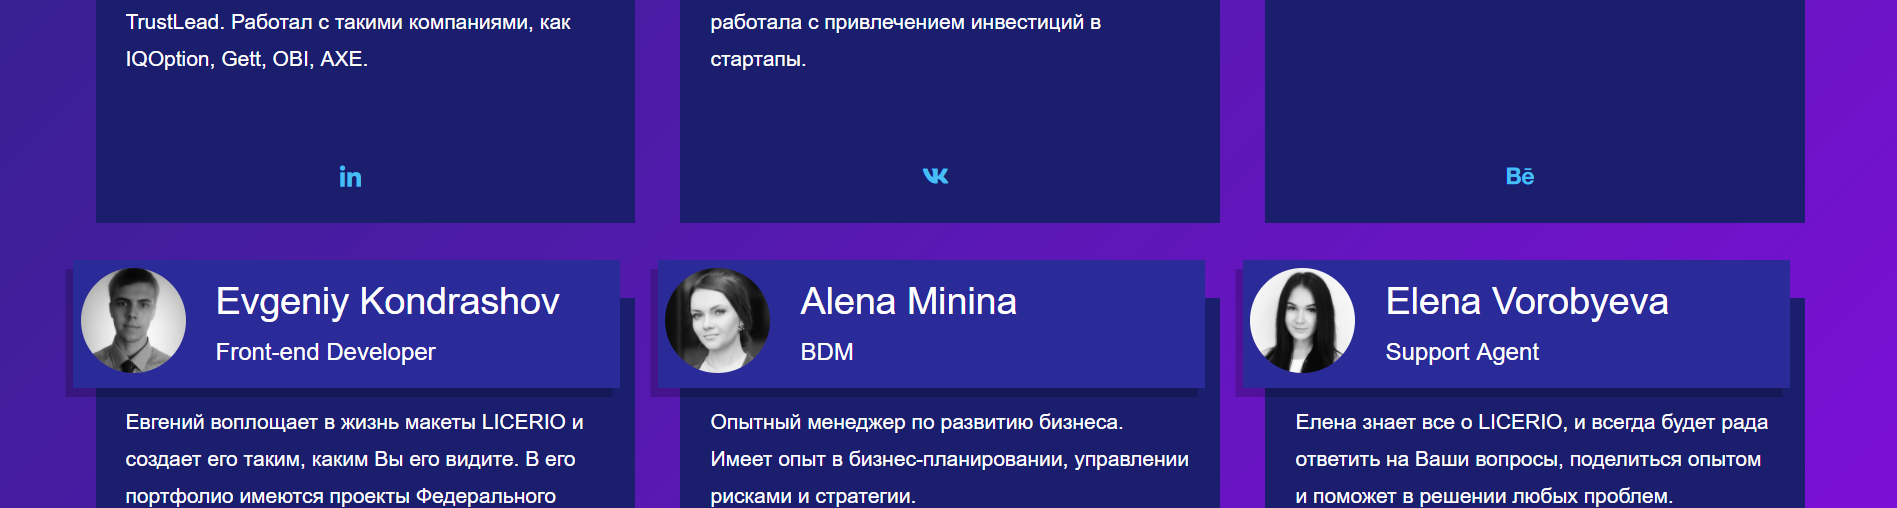 тима2.png